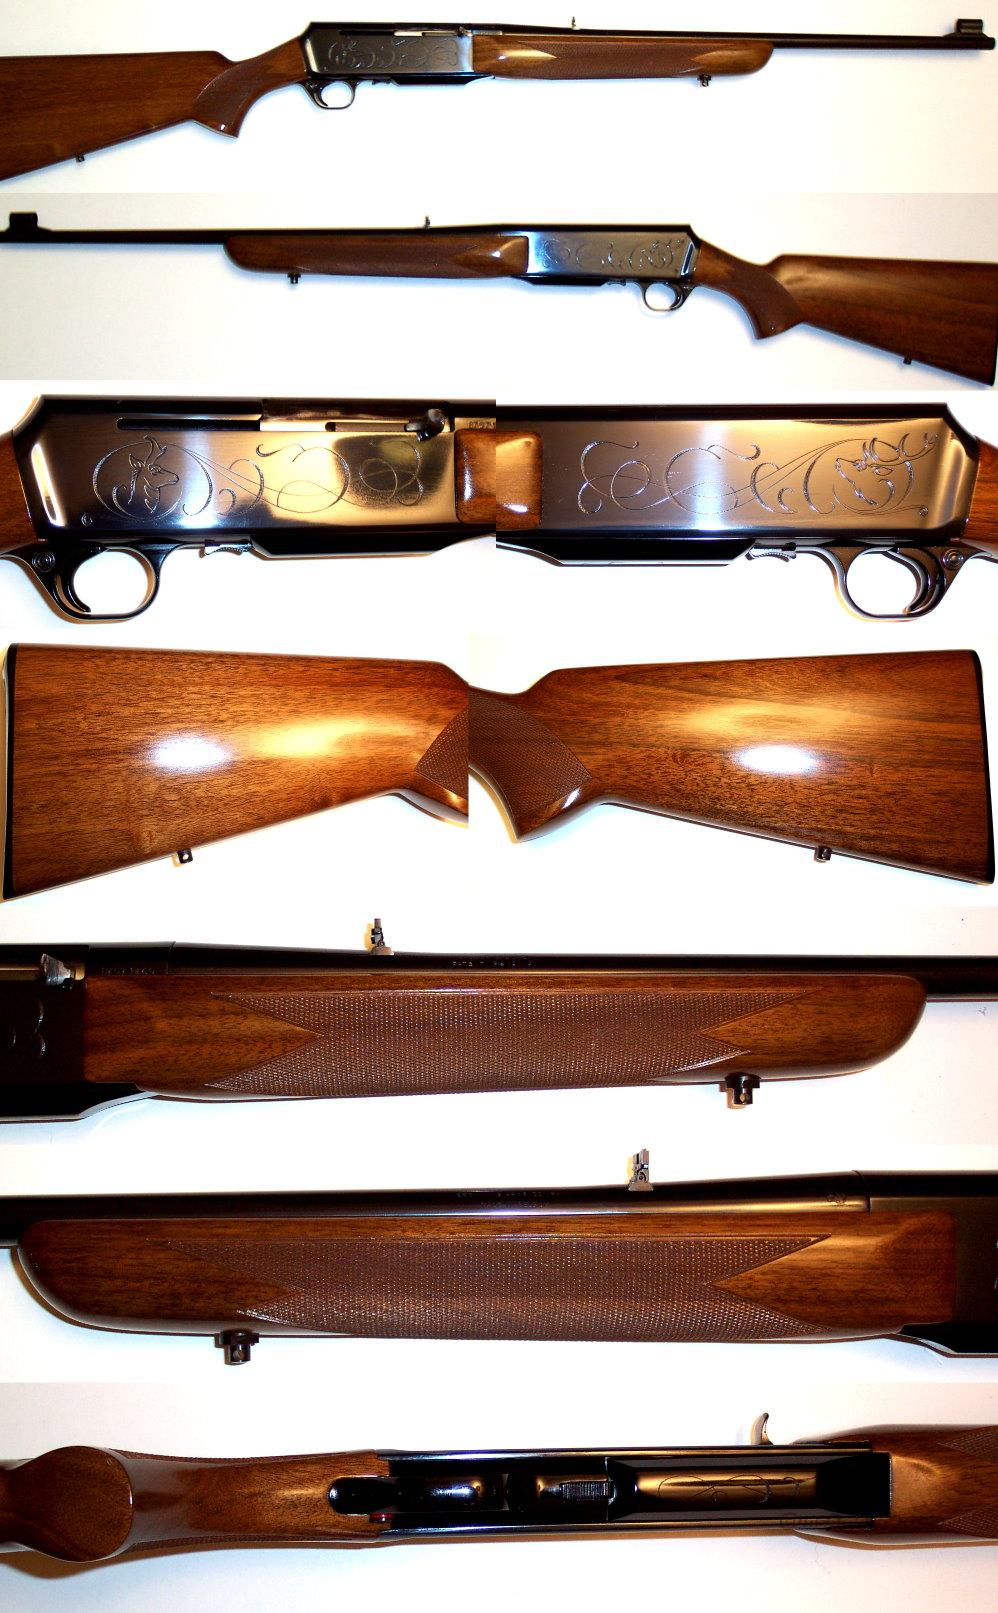 '69 Belgium Browning BAR 308 Grade II  Guns > Rifles > Browning Rifles > Semi Auto > Hunting